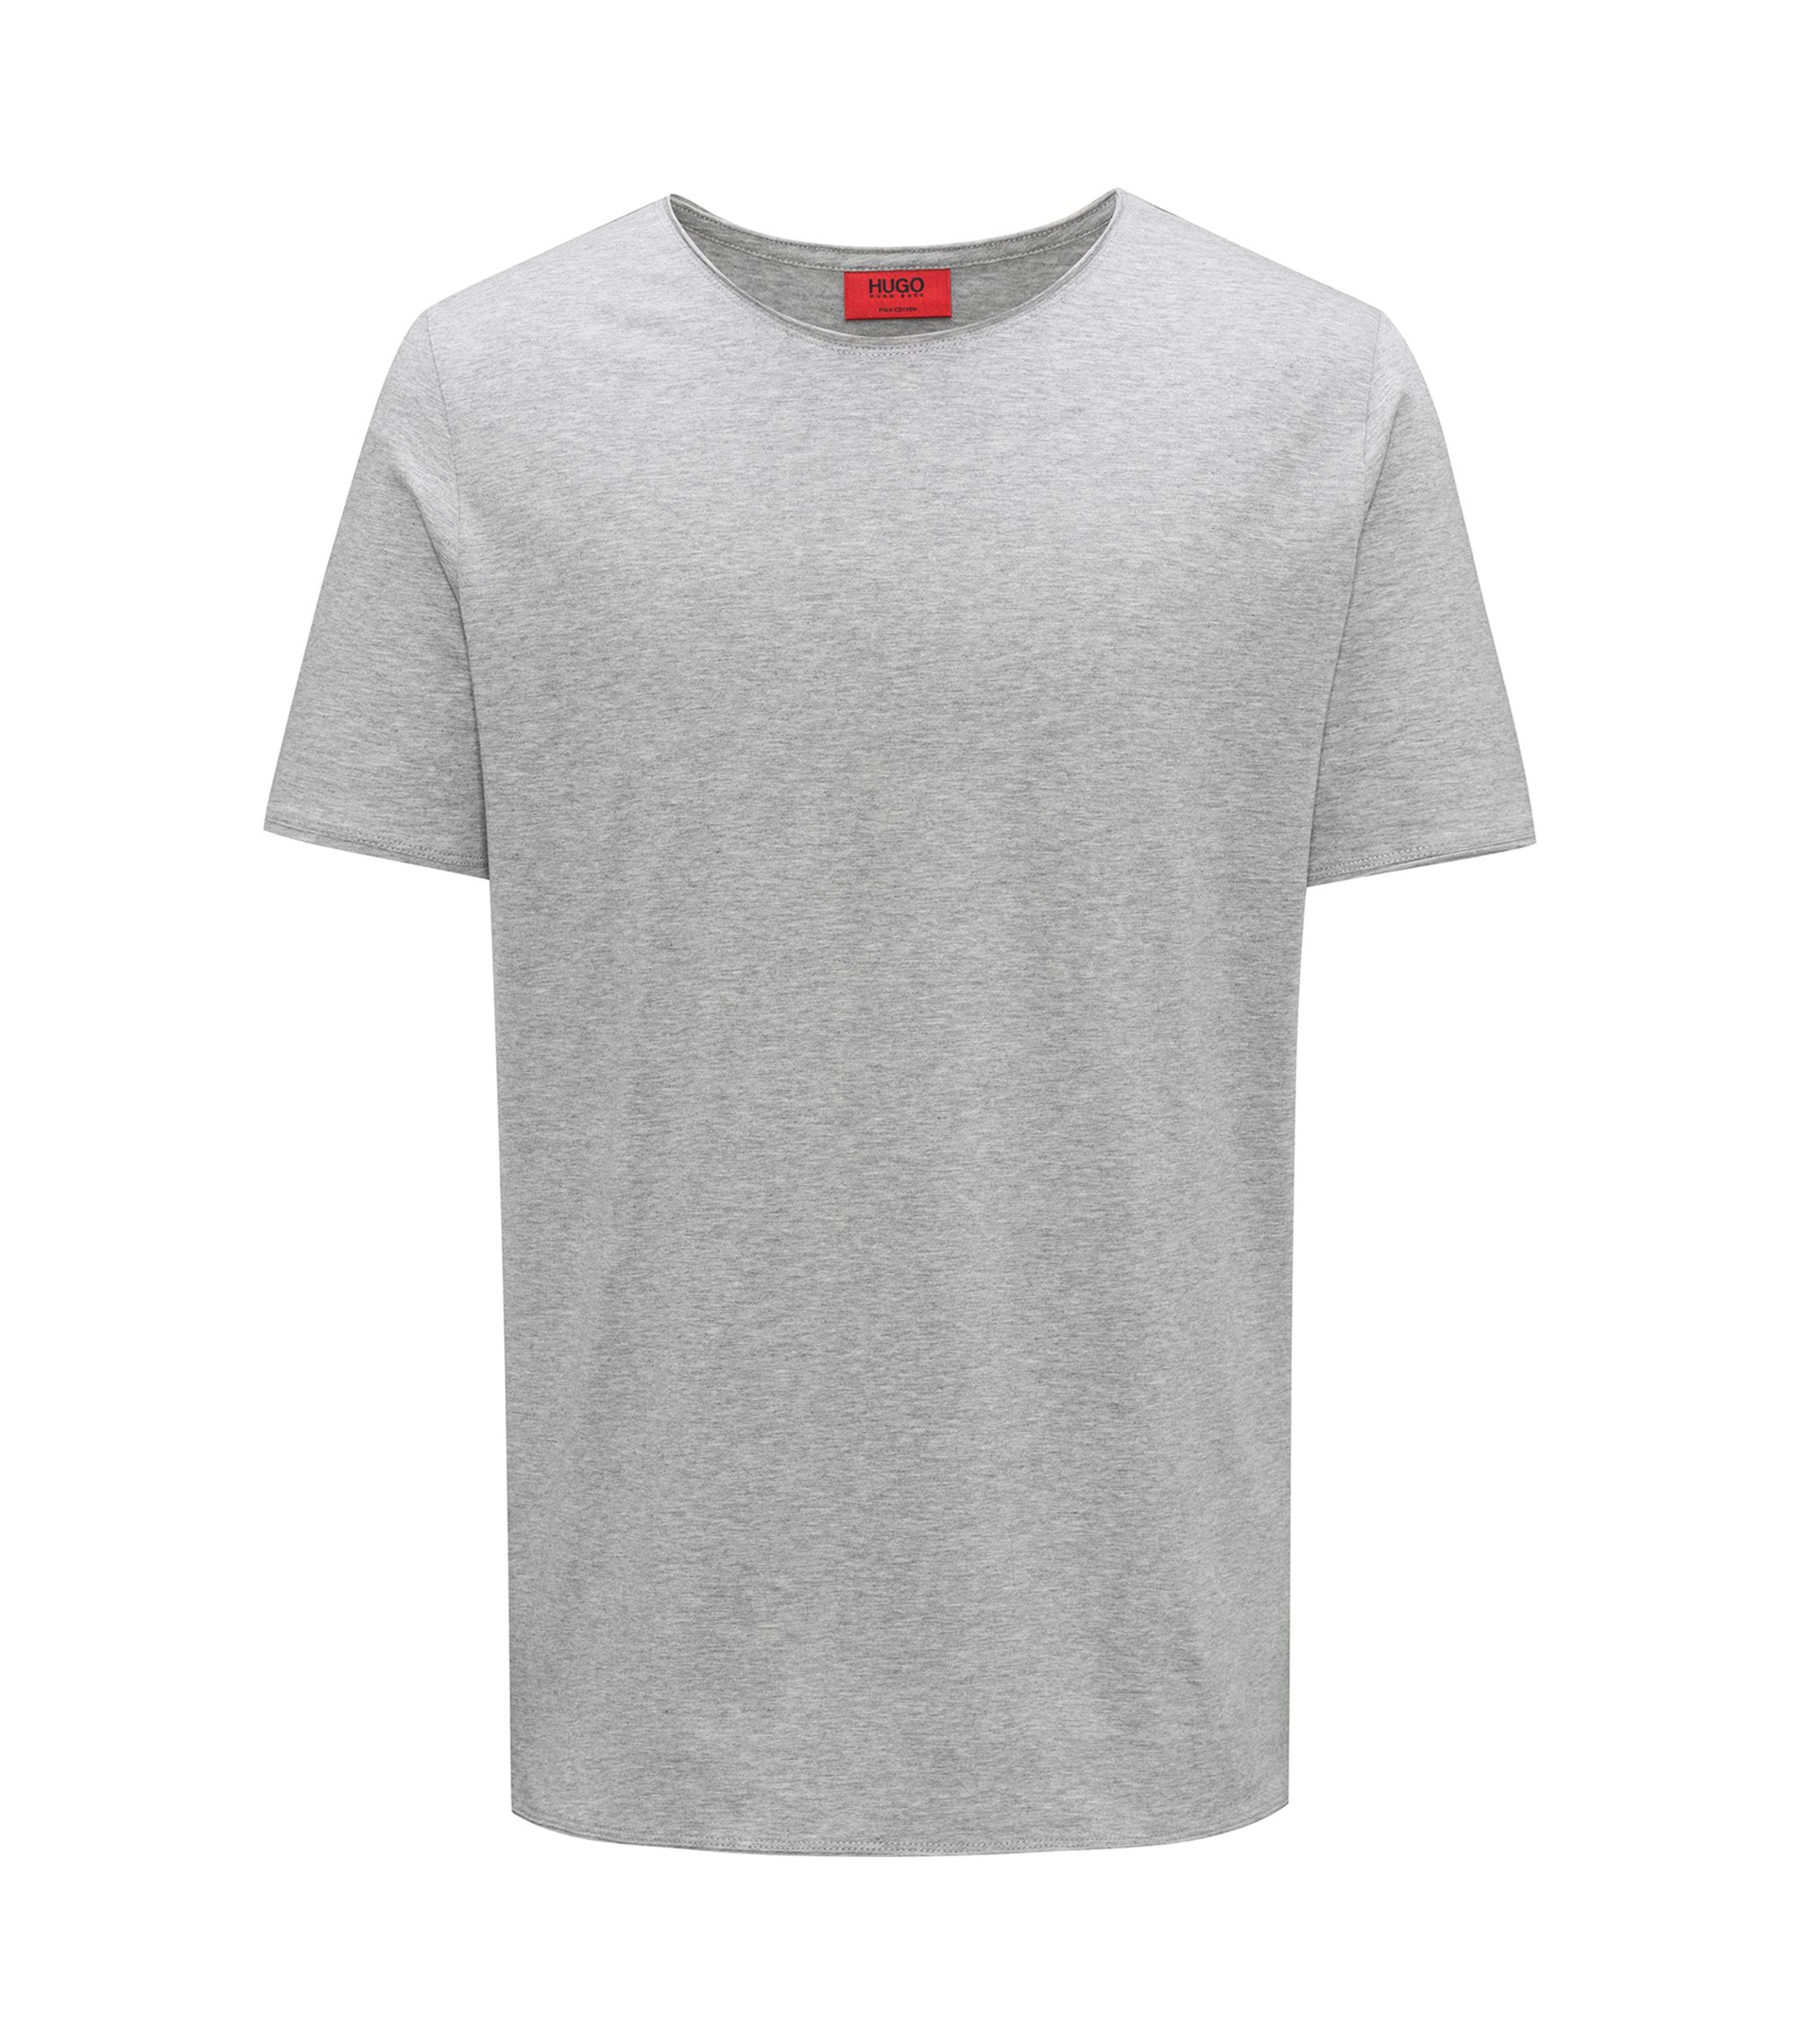 Regular-Fit T-Shirt aus Pima-Baumwolle, Dunkelgrau